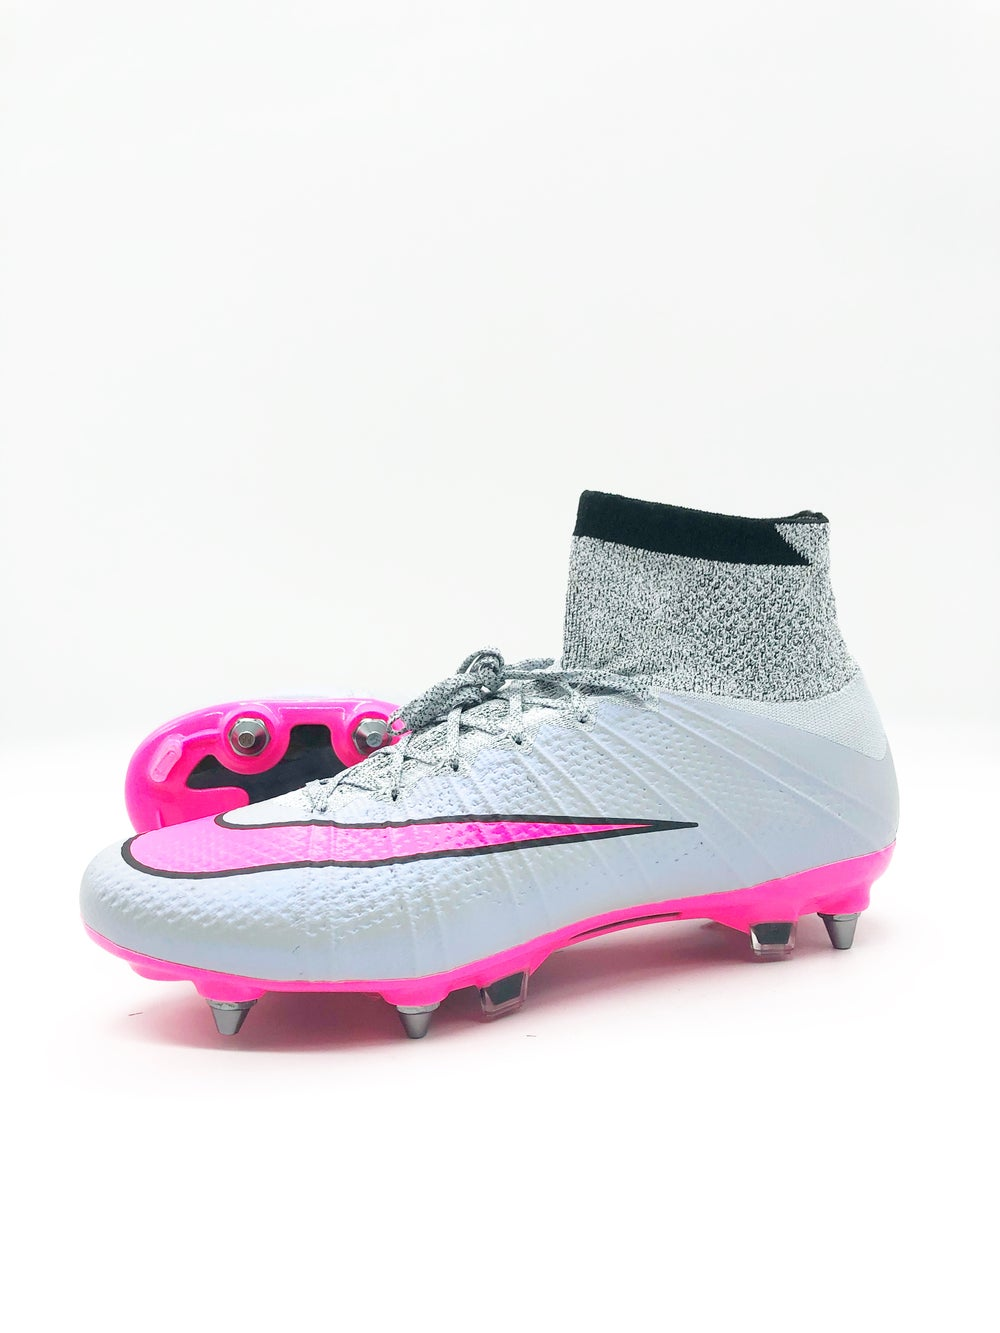 Image of Nike Superfly IV SG-pro Grey Pink